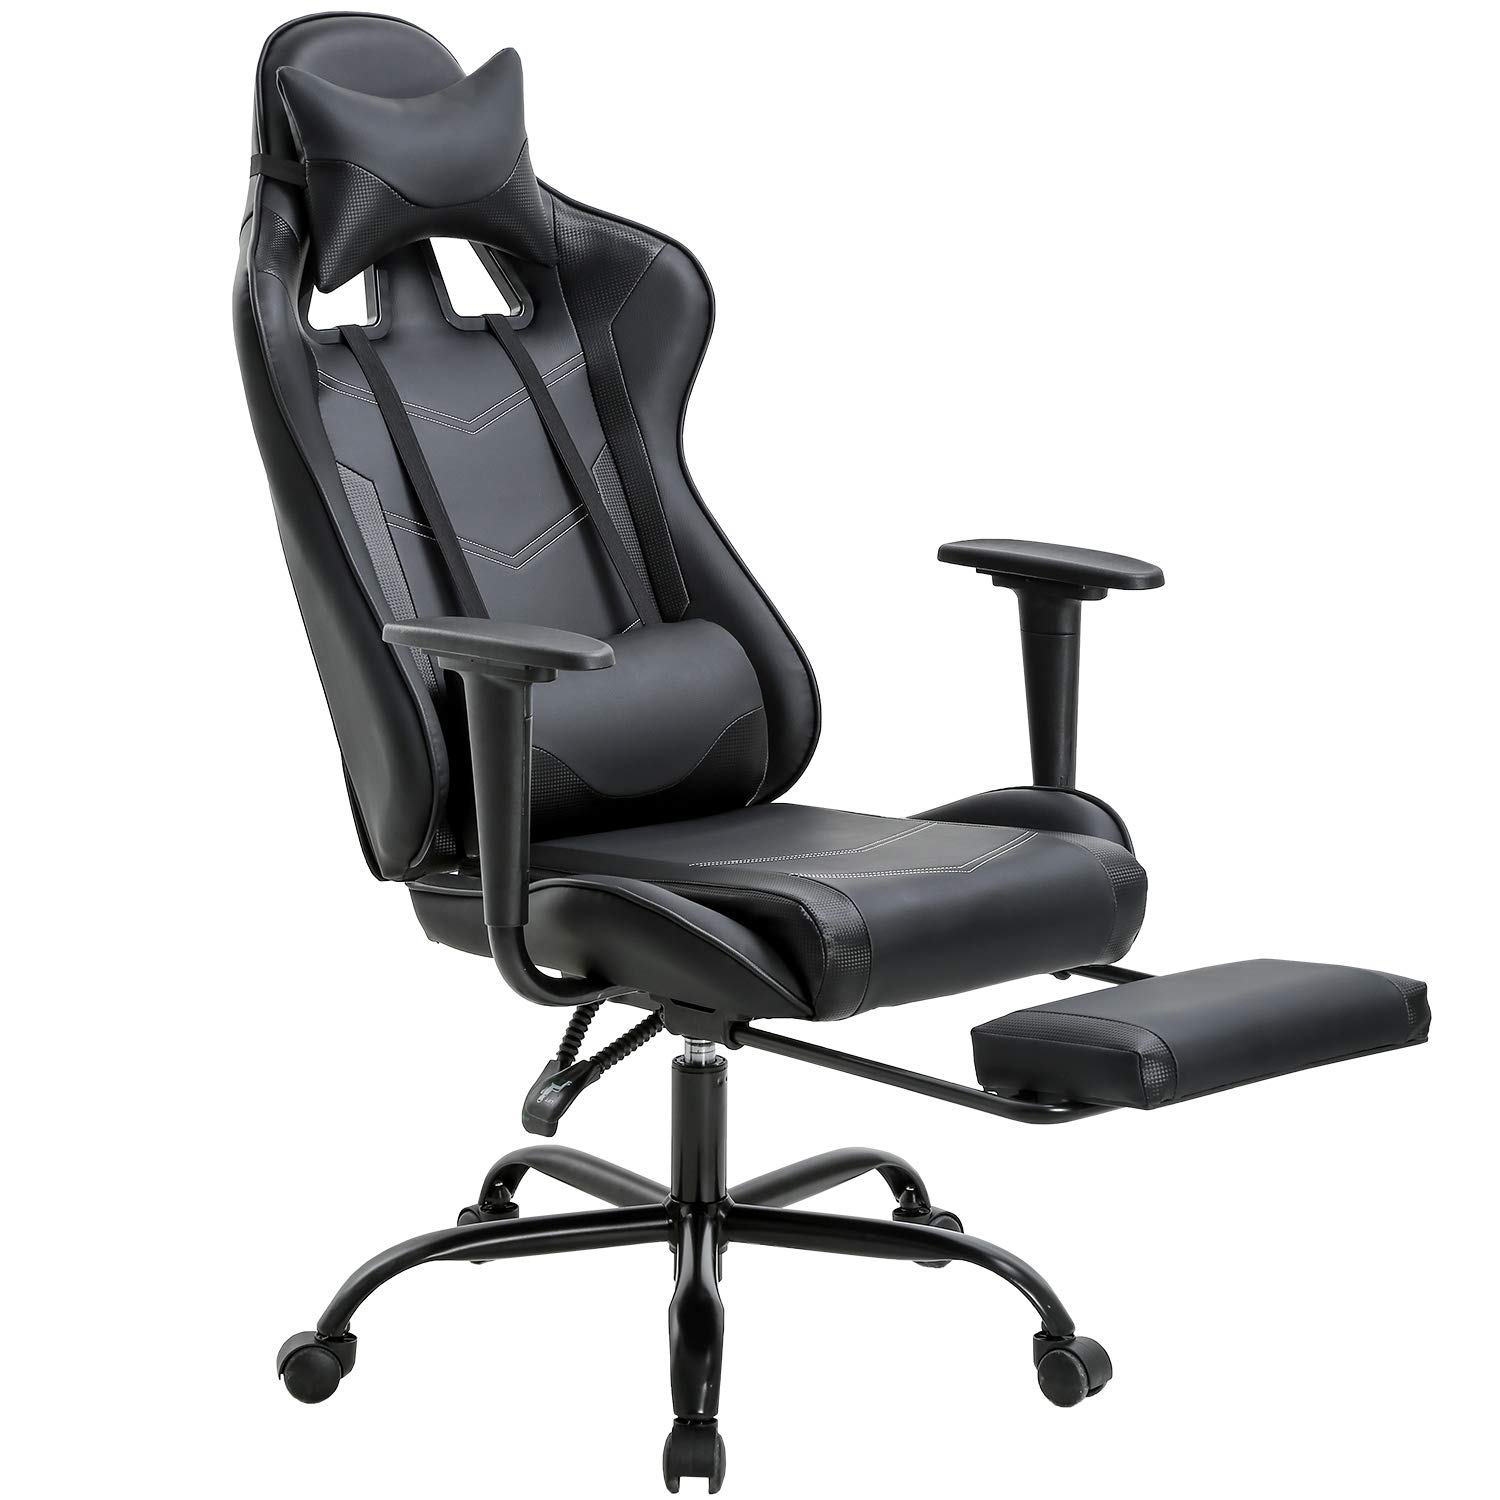 Office Chair PC Gaming Chair Ergonomic Desk Chair Executive PU Leather Computer Chair Lumbar Support with Footrest Modern Task Rolling Swivel Racing Chair for Women&Men, Black